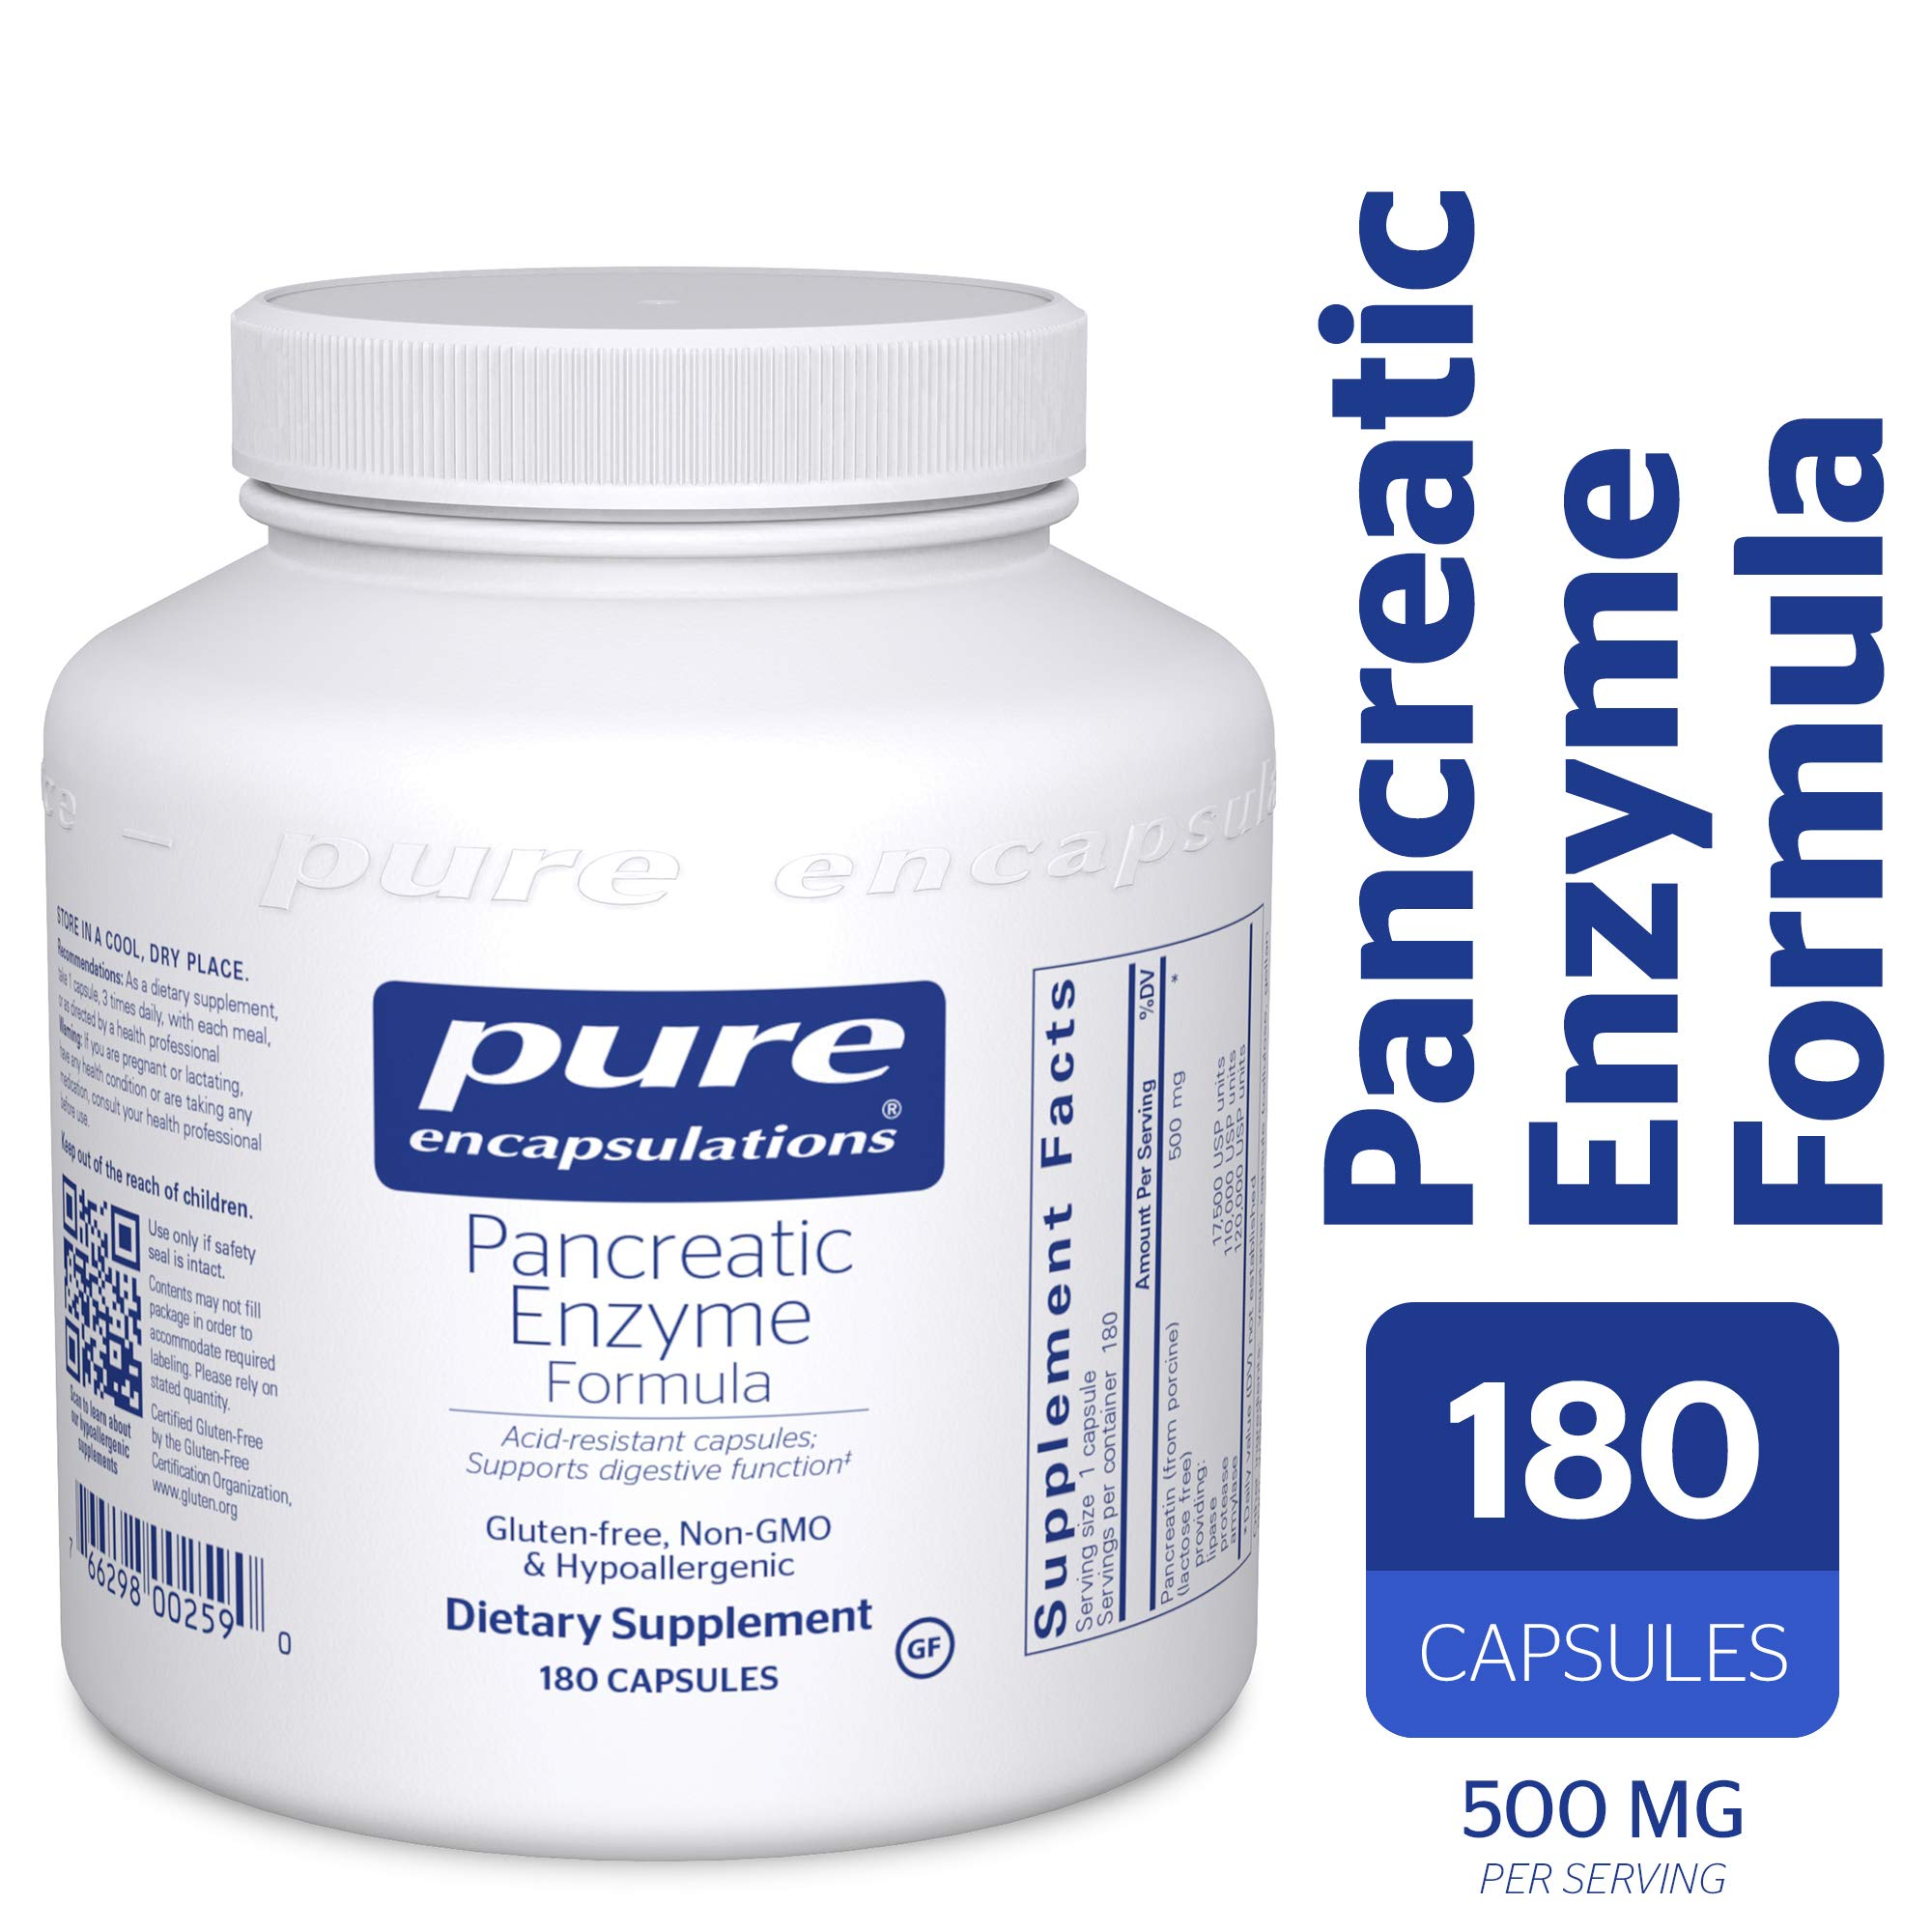 Pure Encapsulations - Pancreatic Enzyme Formula - Hypoallergenic Supplement to Support Proper Digestive Function* - 180 Capsules by Pure Encapsulations